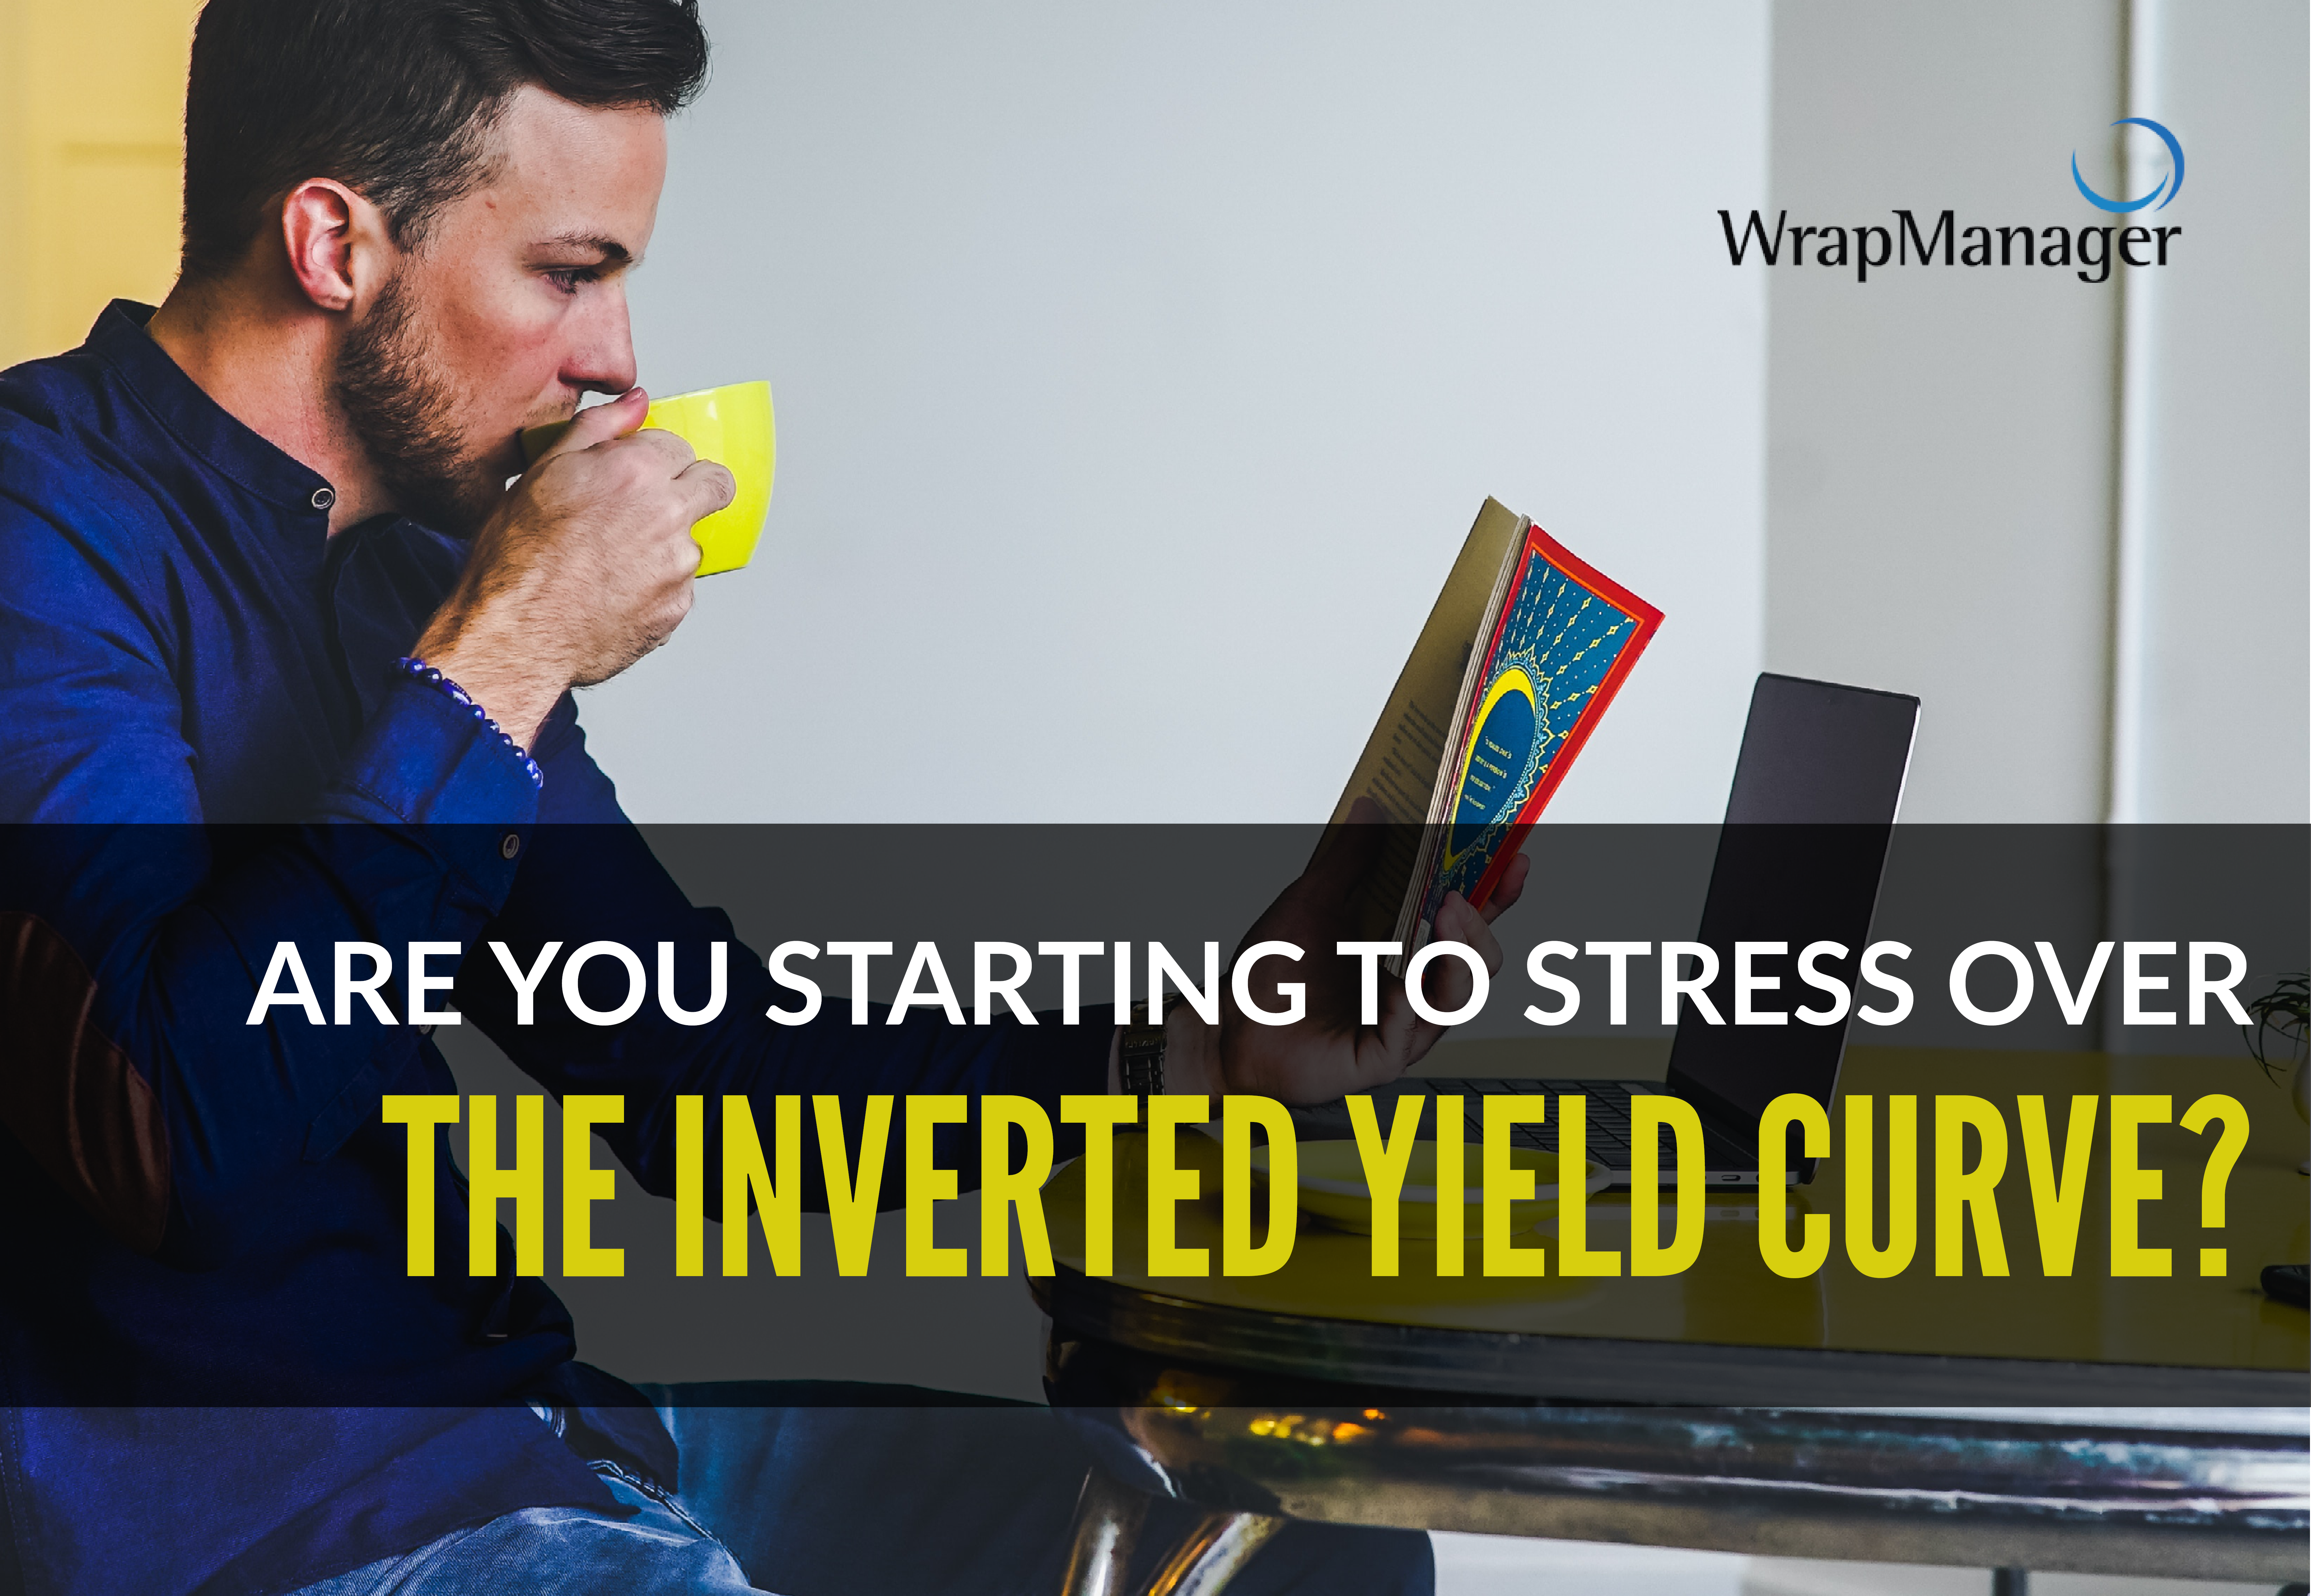 Should Investors Stress Over an Inverted Yield Curve?